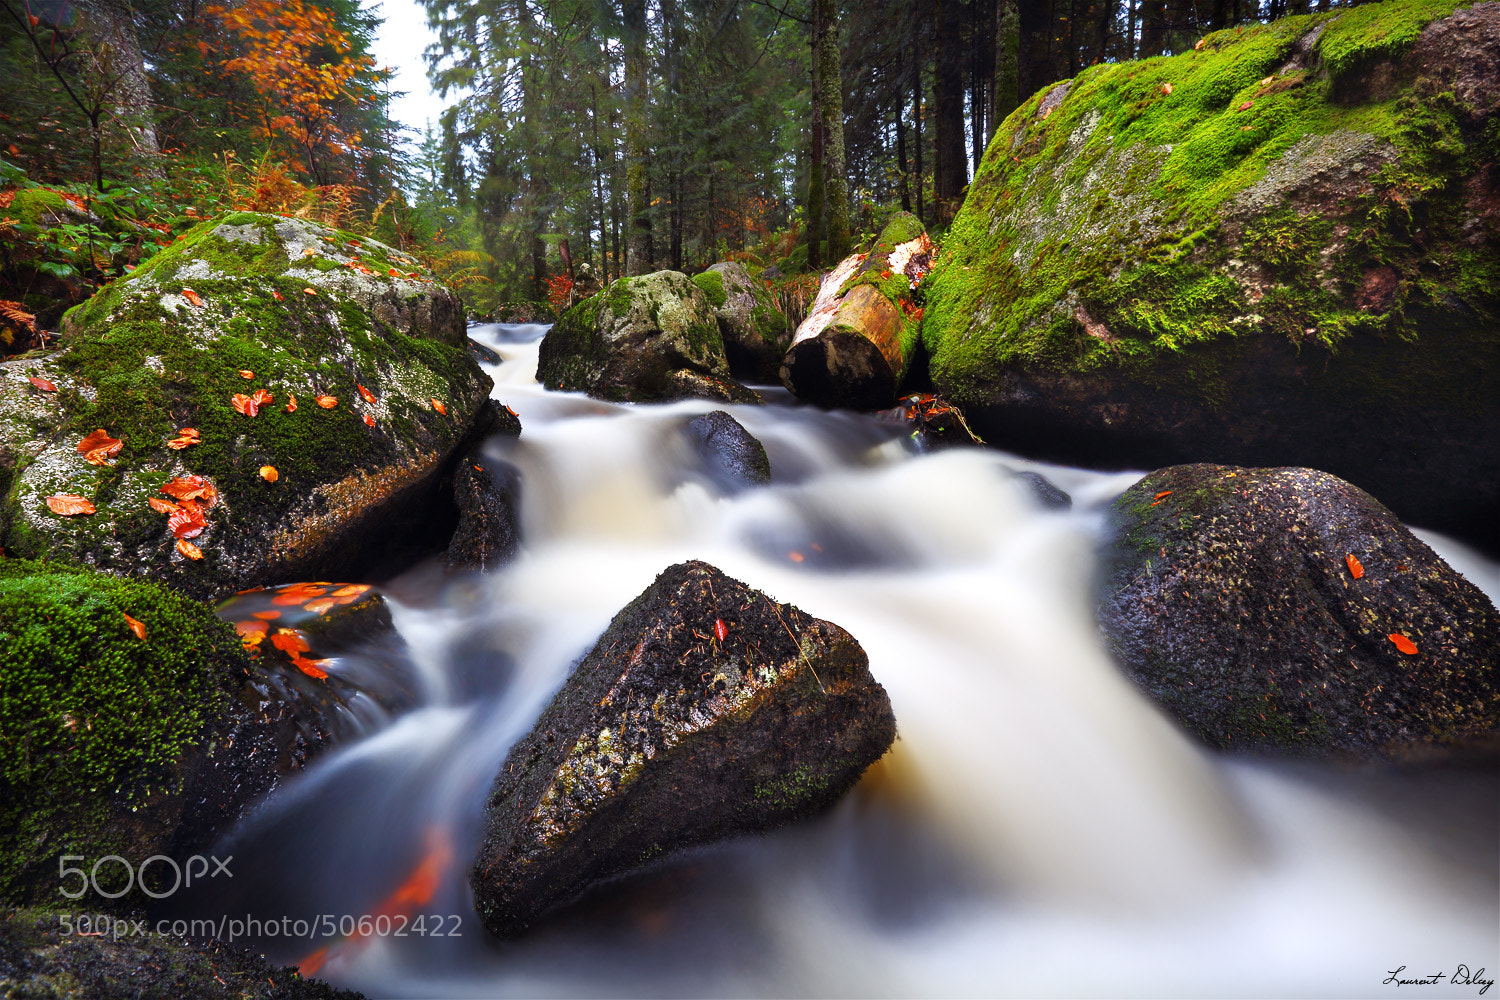 Photograph Autumnal River by Laurent DELCEY on 500px